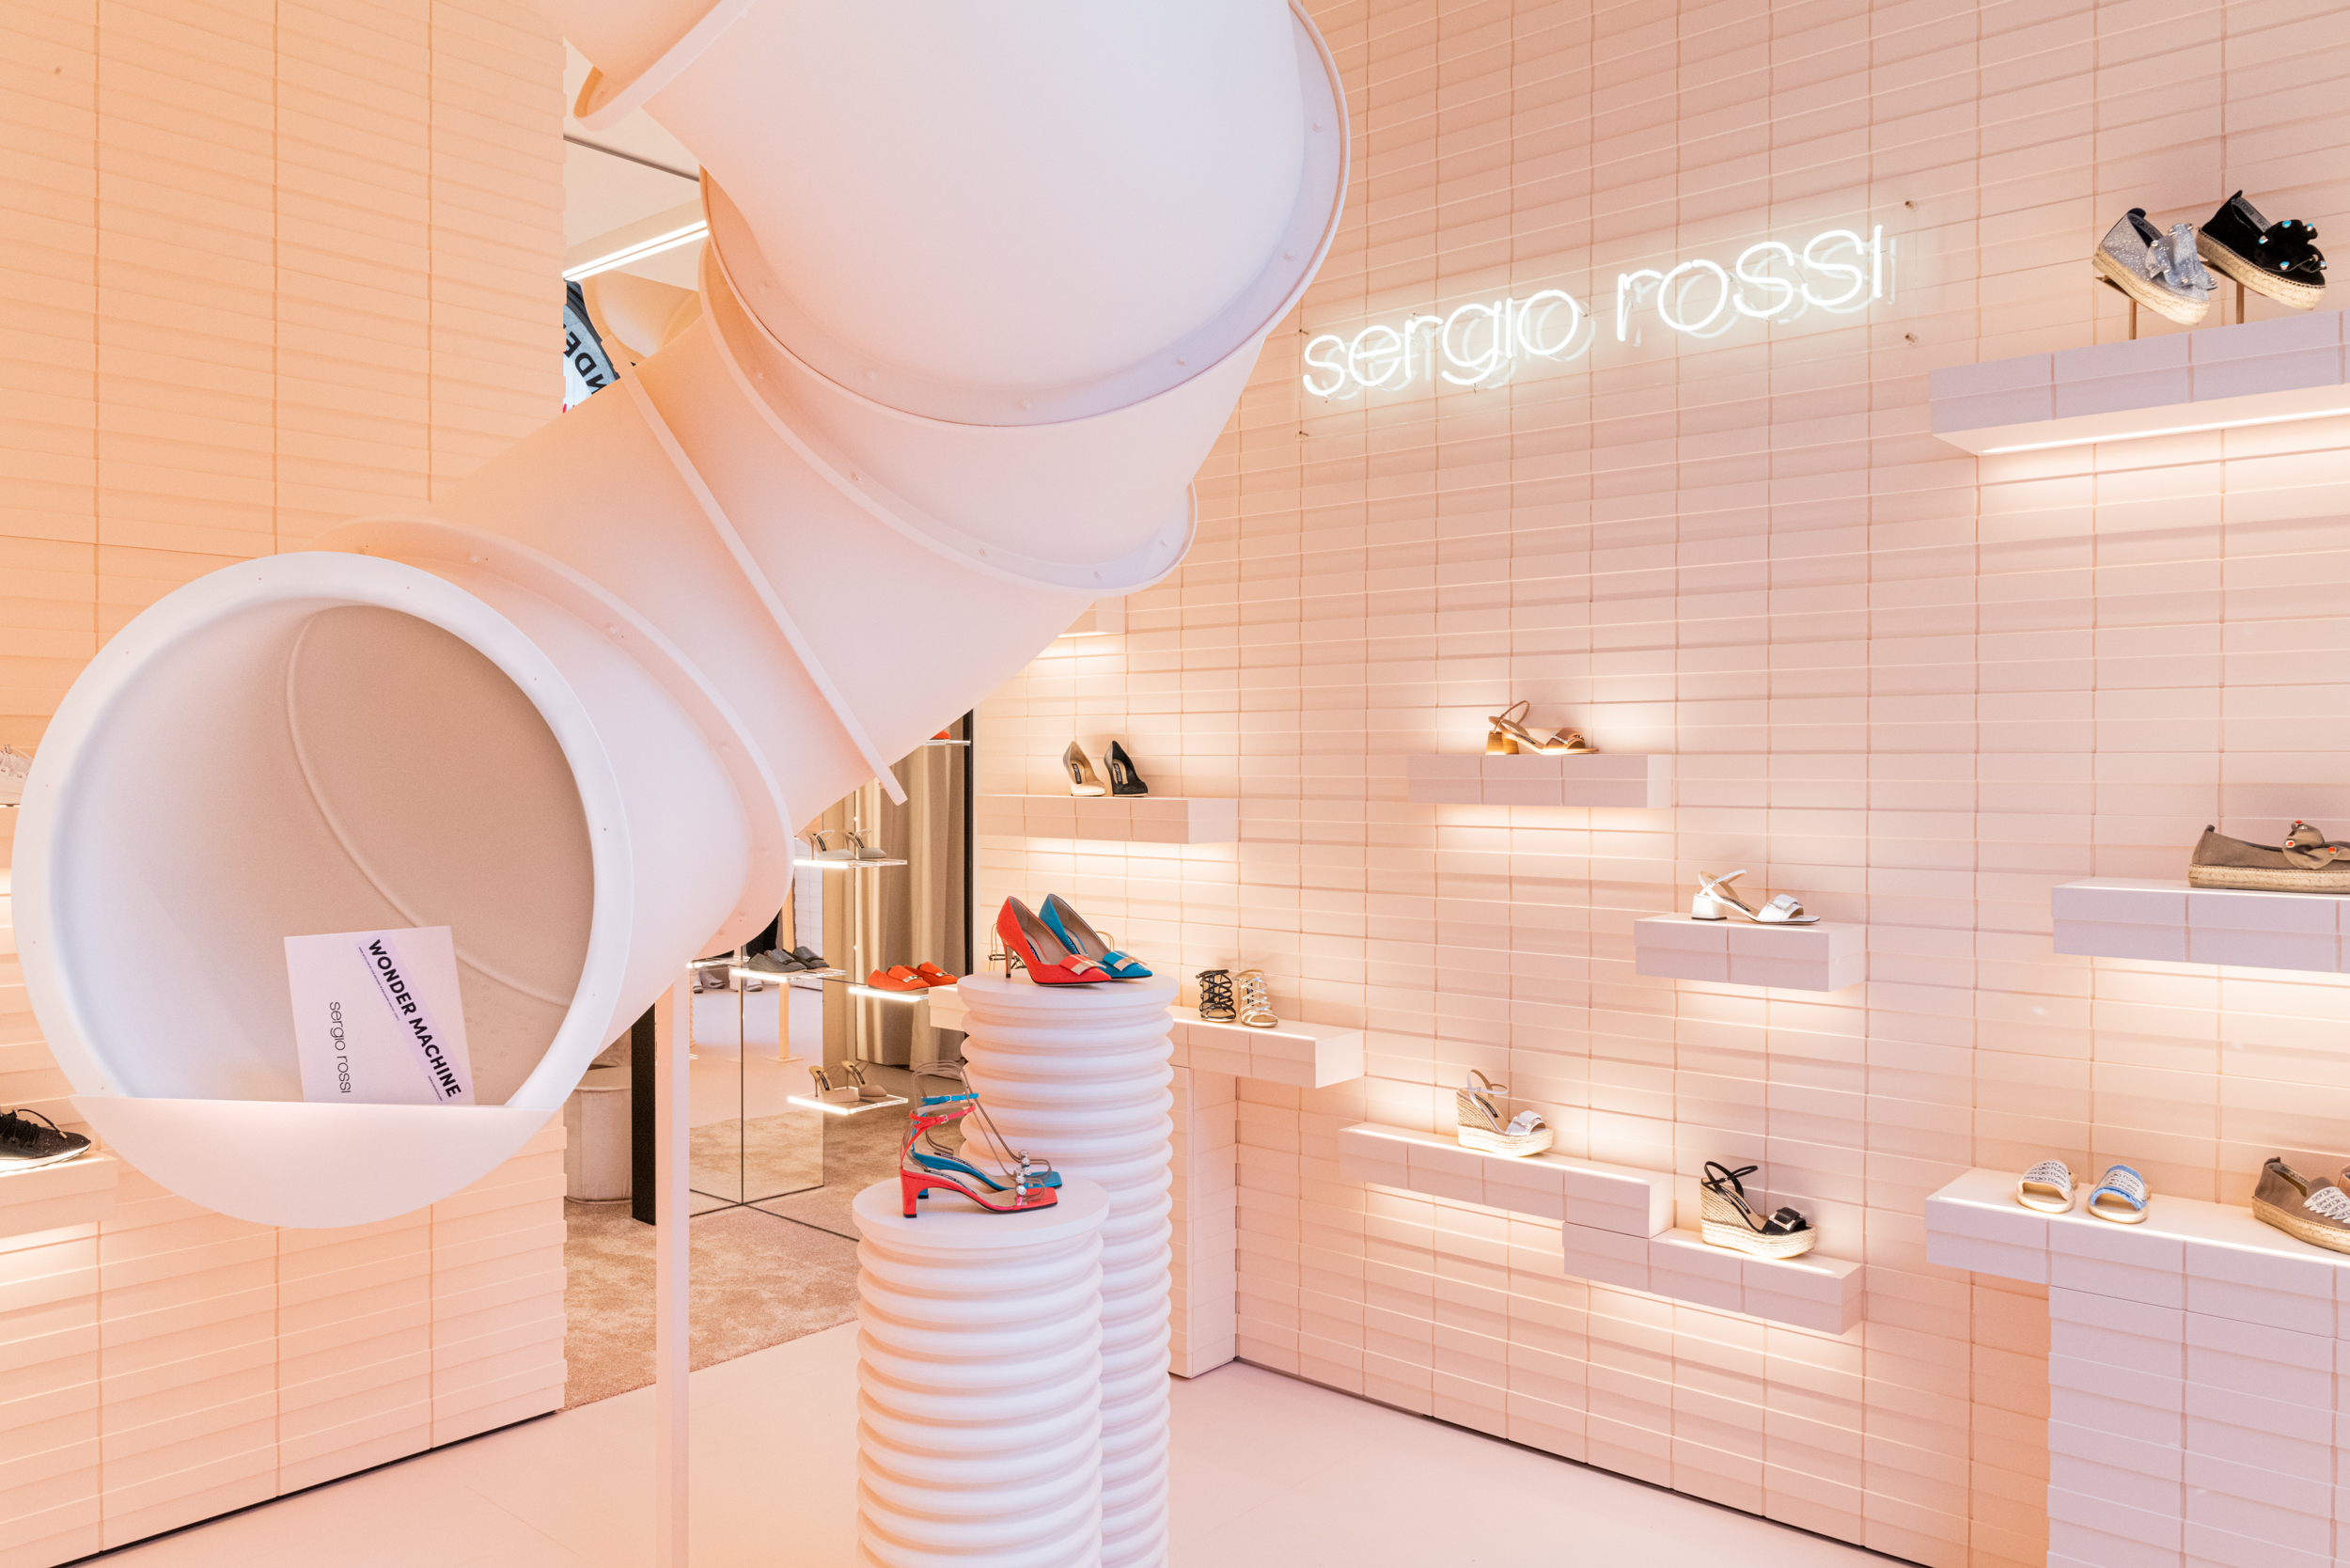 Sergio Rossi new pop-up store in Milan - innovative concept